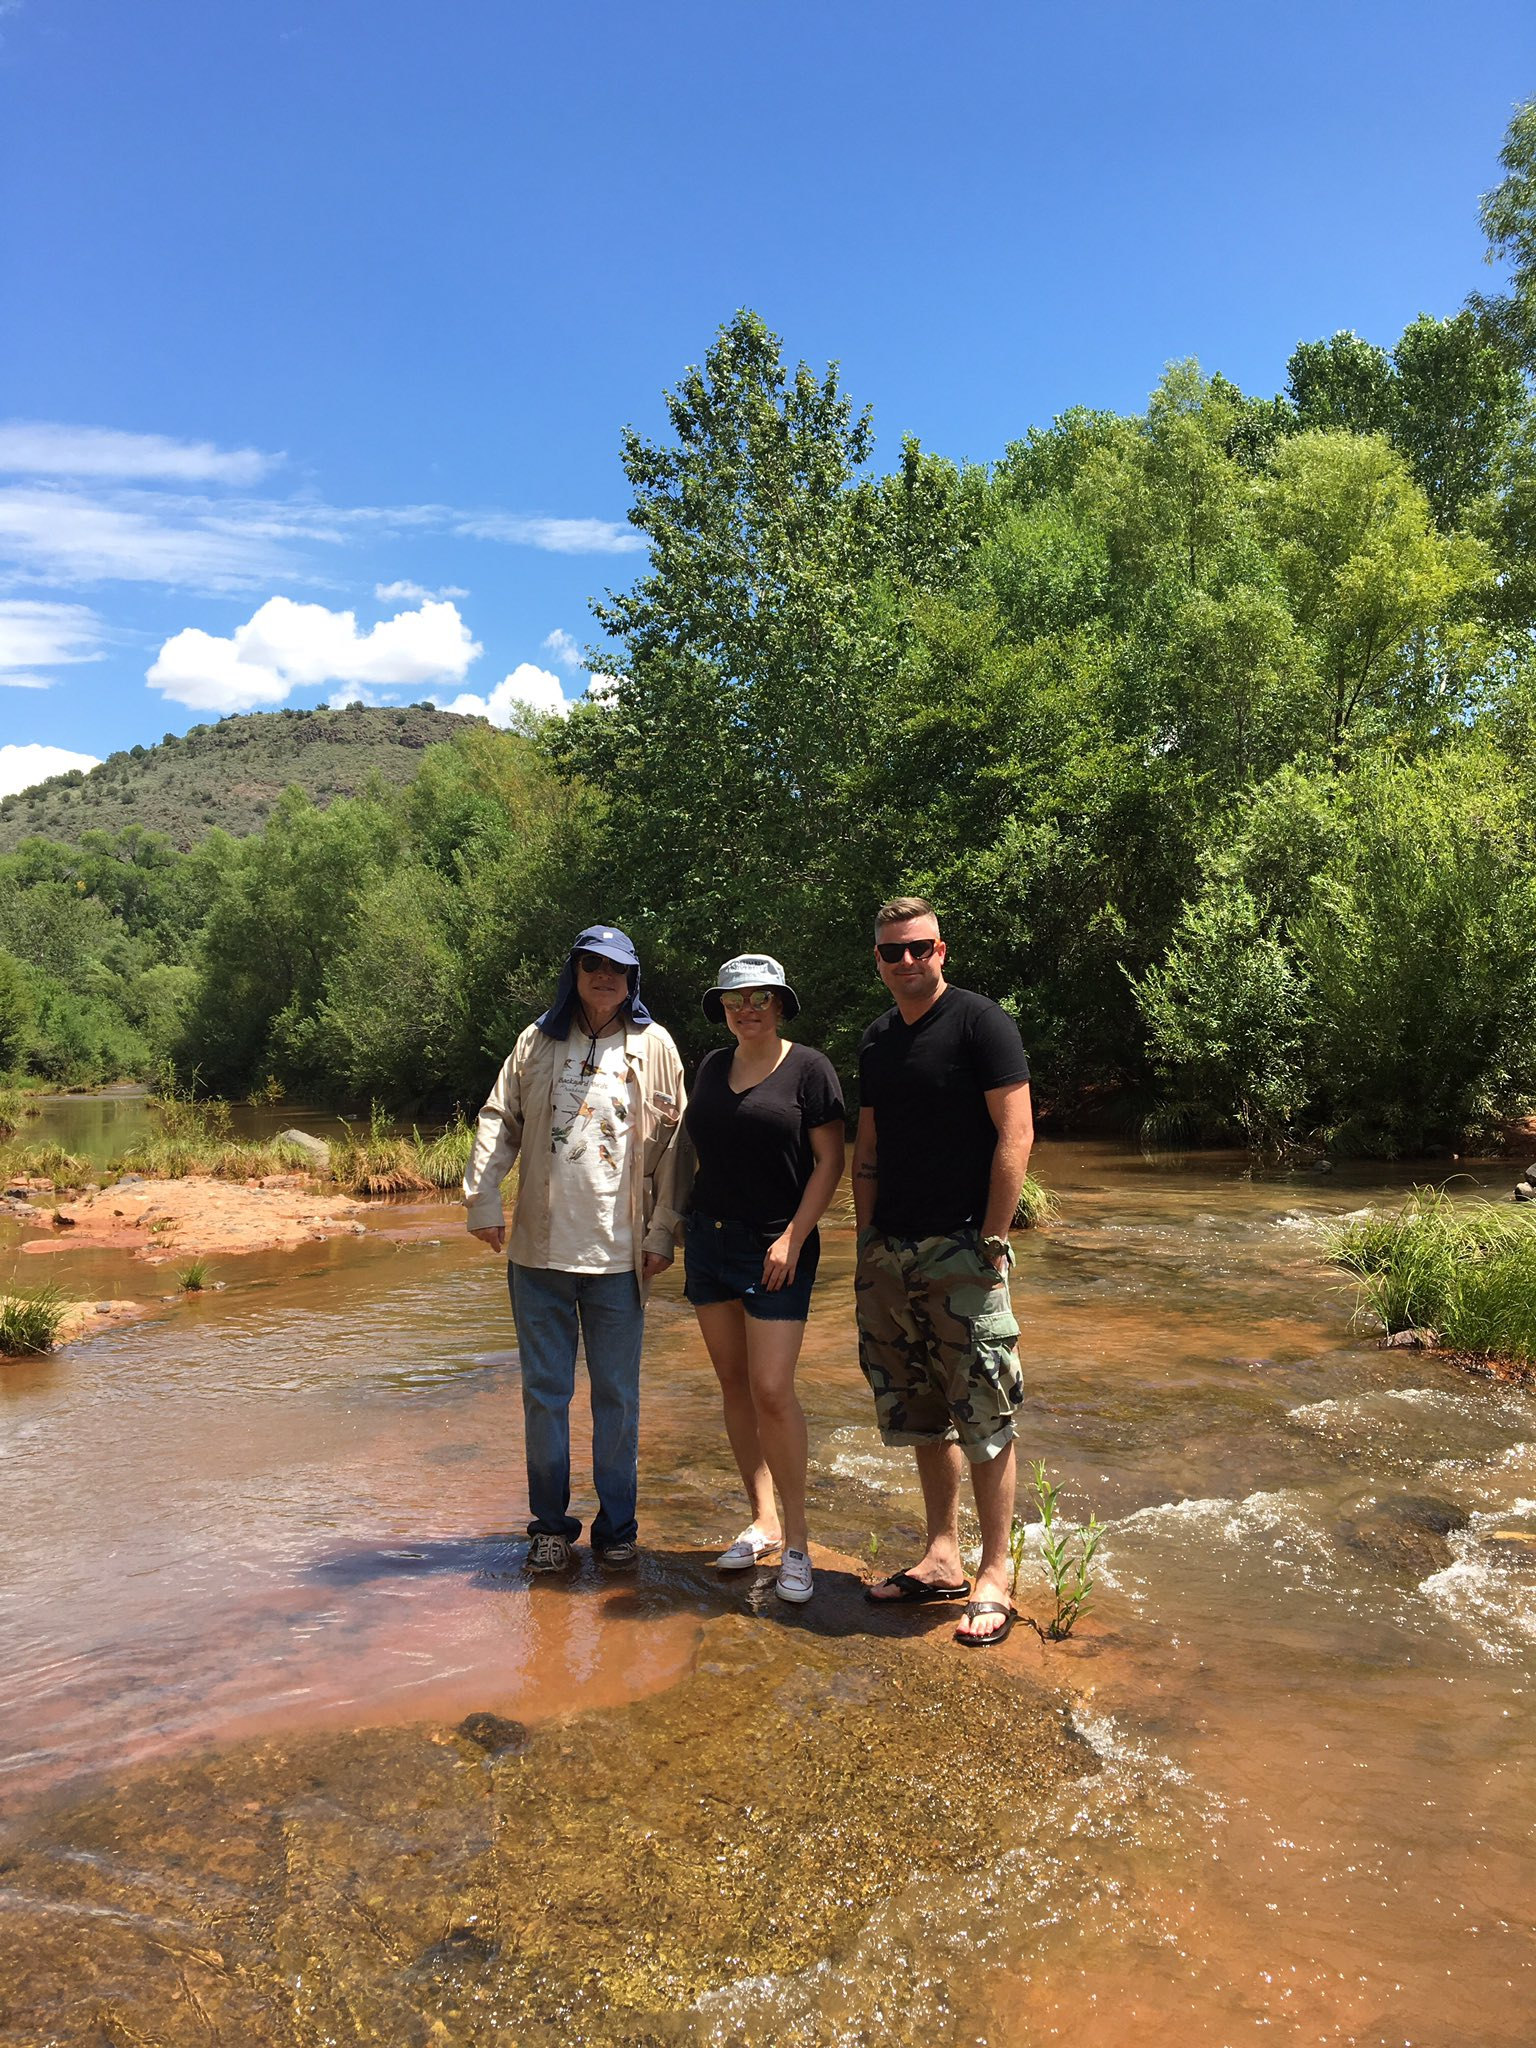 Saturday in Oak Creek with @MeghanMcCain & Jimmy McCain #Arizona https://t.co/Pz6QLXXH23